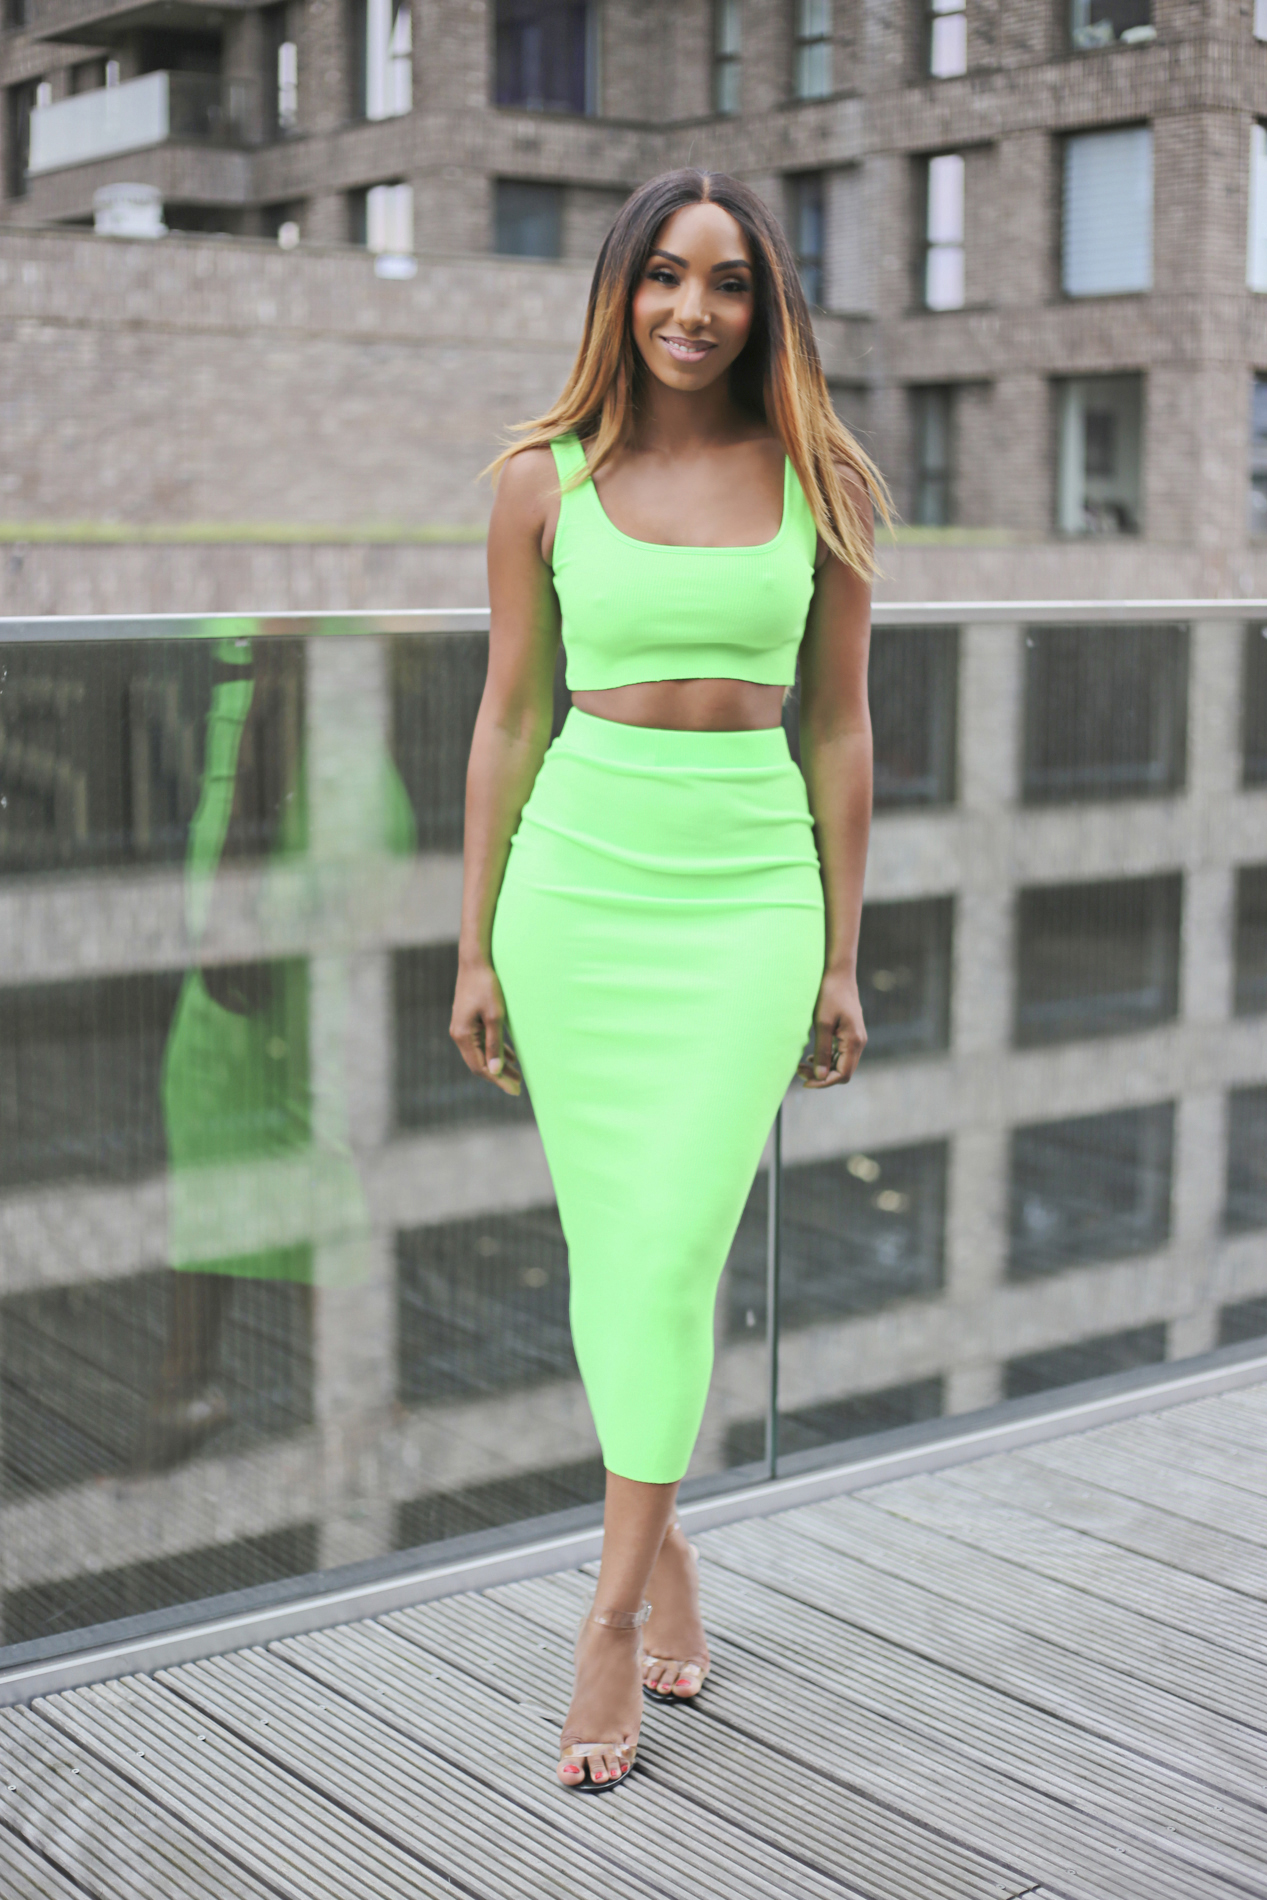 Dope in real life skirt